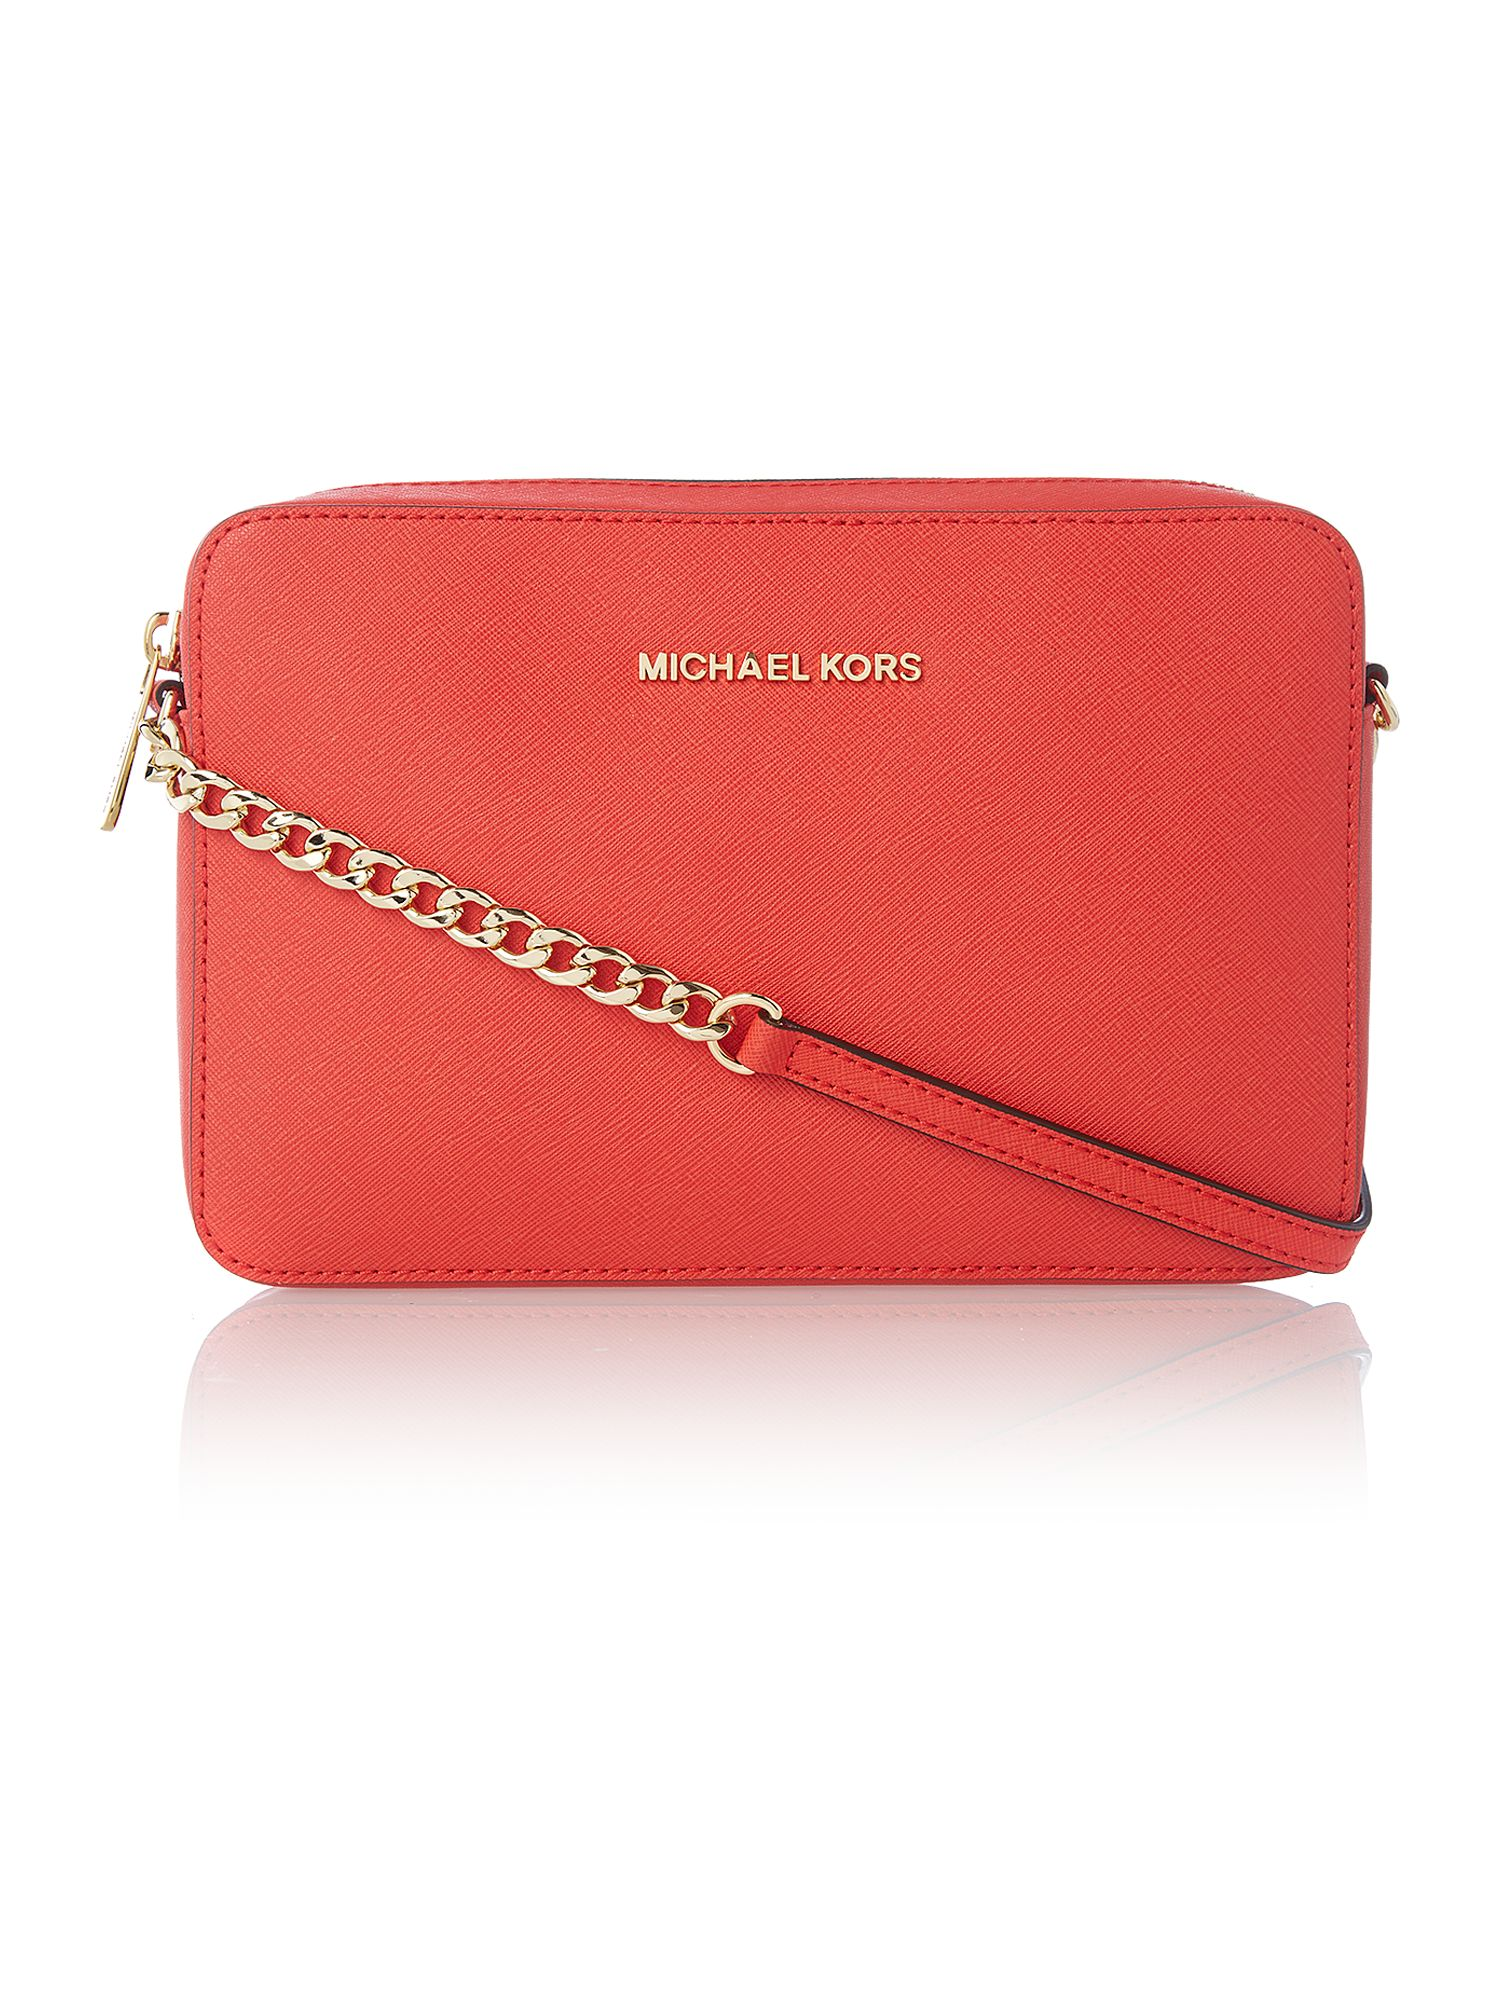 Jet set travel small red cross body bag